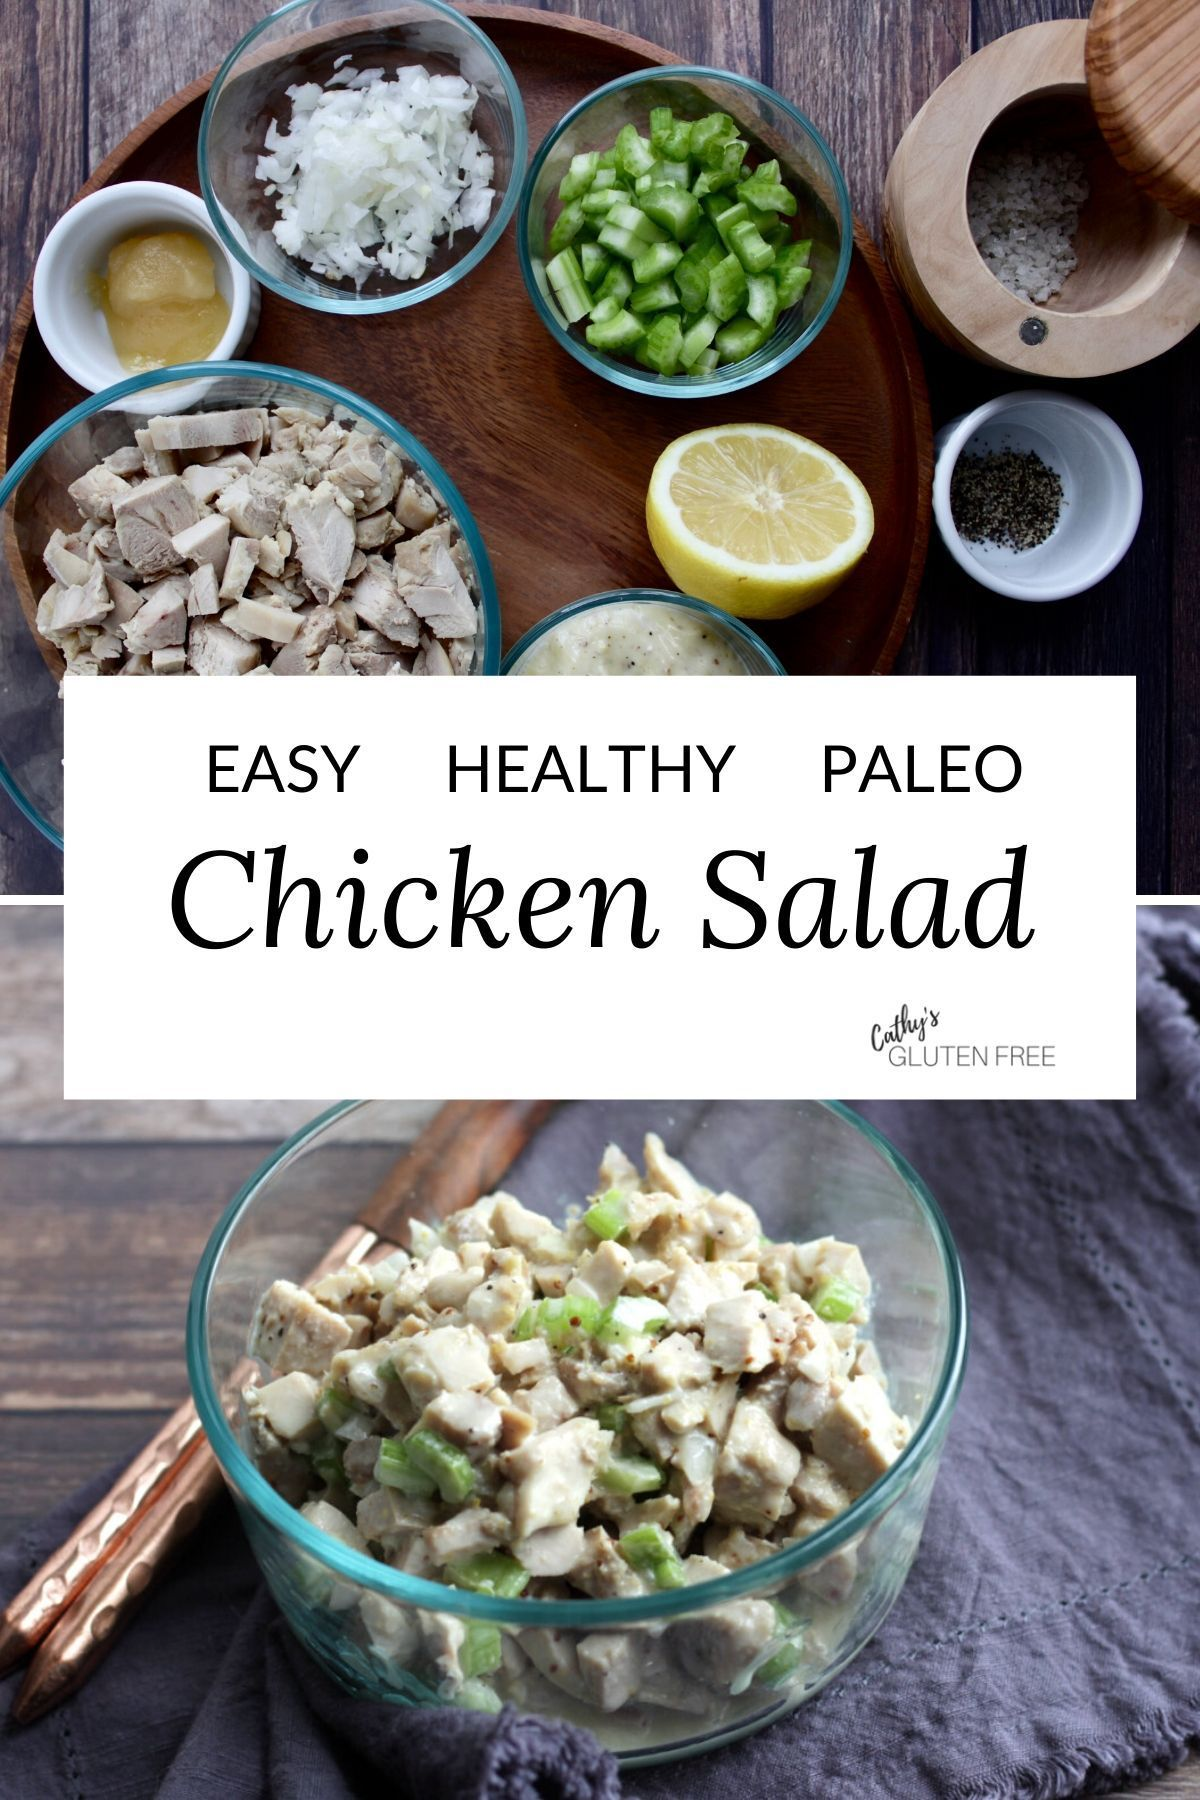 This simple Easy Chicken Salad Recipe is the best, quick, healthy way to make the classic salad with mayo. It's great for leftover, cooked chicken or turkey but can also be made with rotisserie chicken. #with mayo #simple #healthy